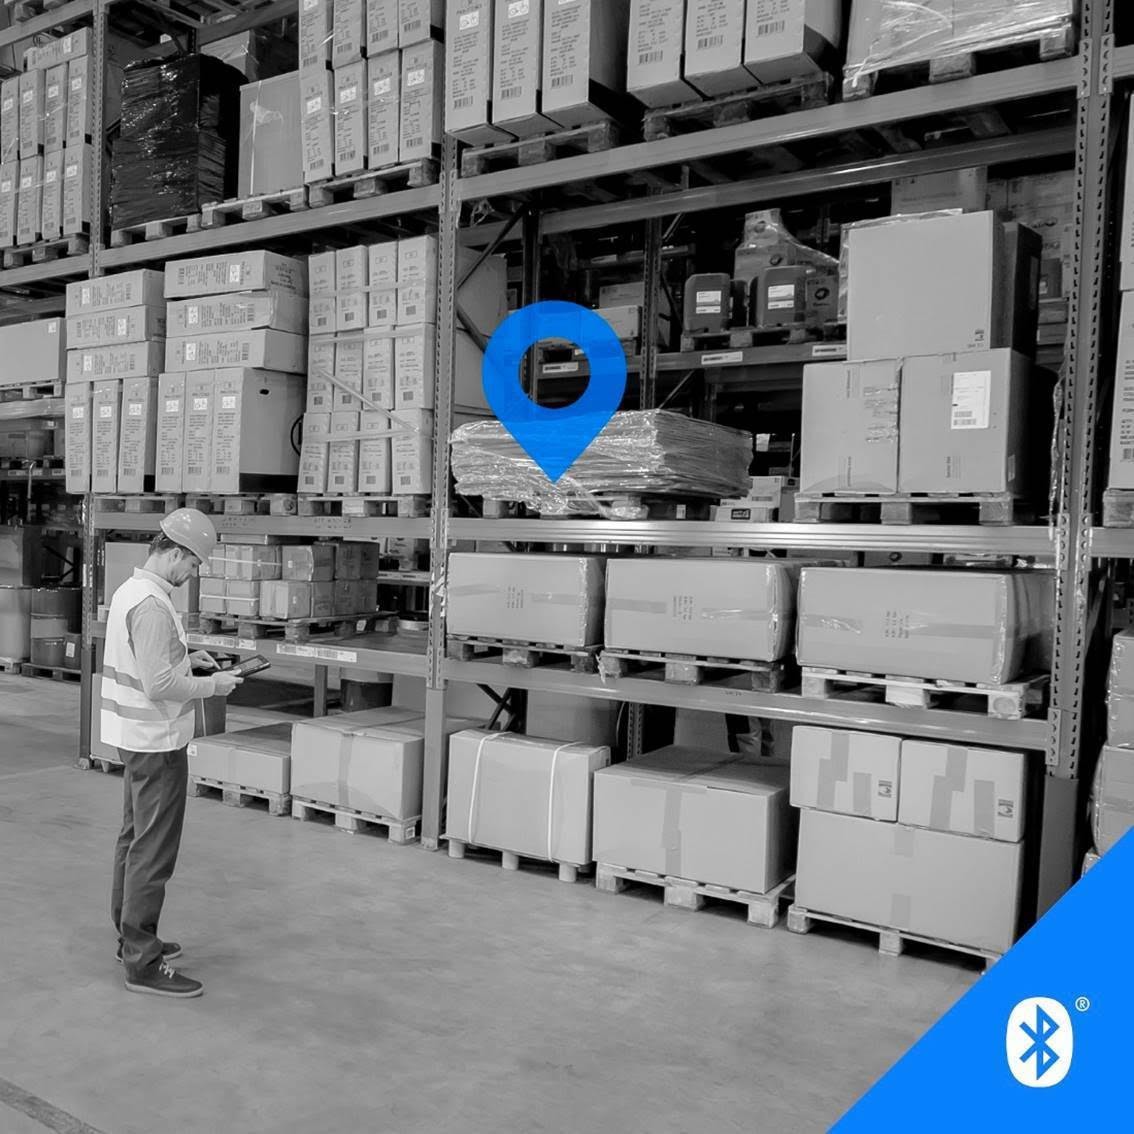 Bluetooth, Bluetooth Special Interest Group, Product, Organization, Internet of things, Industry, Warehouse, , Service, , factory, Product, Warehouseman, Warehouse, Inventory, Building, Machine, Factory